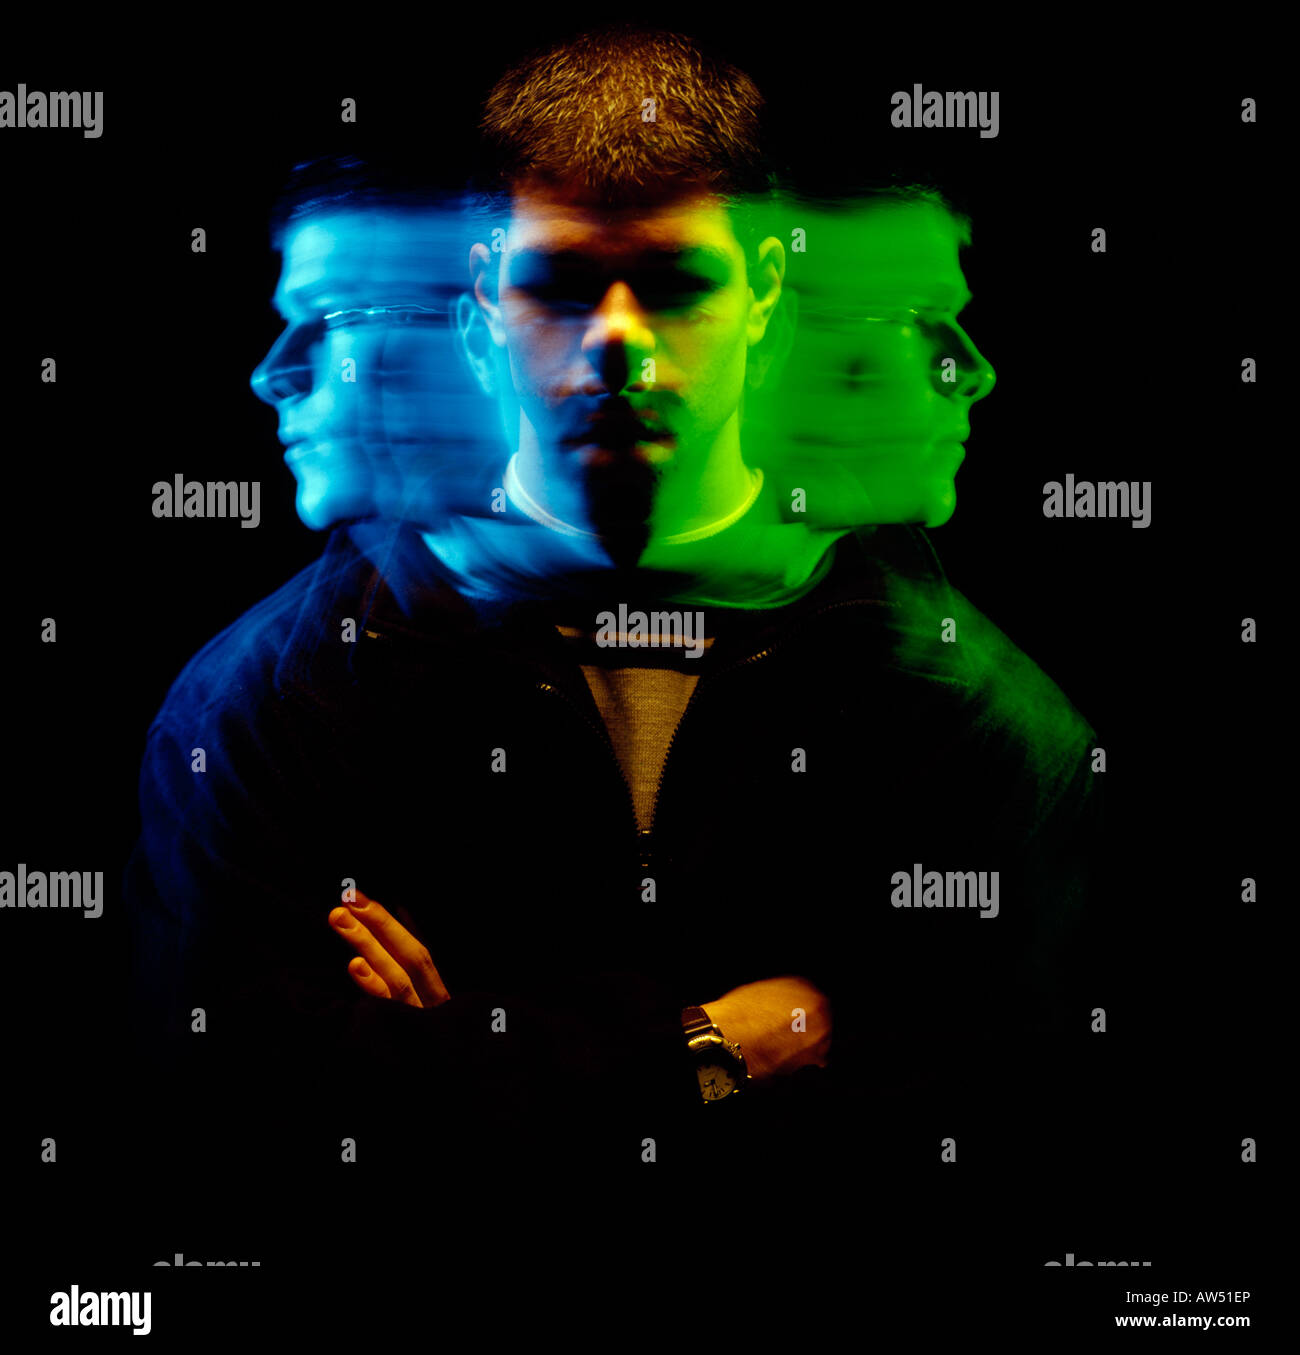 Unable to focus - Stock Image